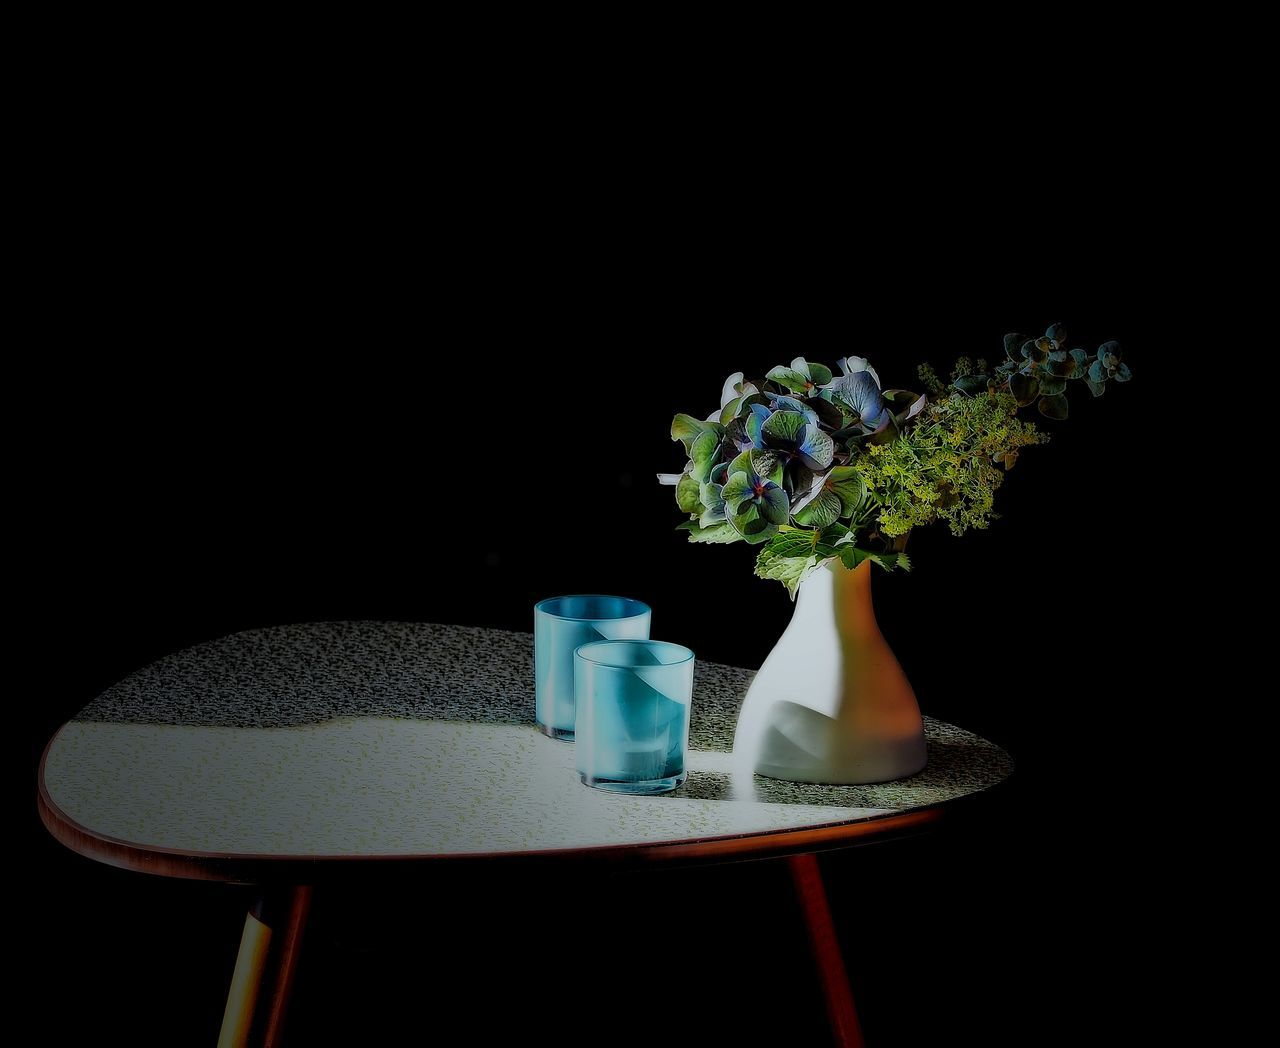 Still Life With Kidney Shaped Table and Flowers Black Background Fifthies Flower Flower Head Flower Pot Fragility Freshness Furniture Glass Reflection Glasses Hdrphotography Indoors  Kidney Shaped Light Light And Shadow Möbel Nierentisch No People Still Life Stillleben StillLifePhotography Studio Shot Table Vase Vintage Style